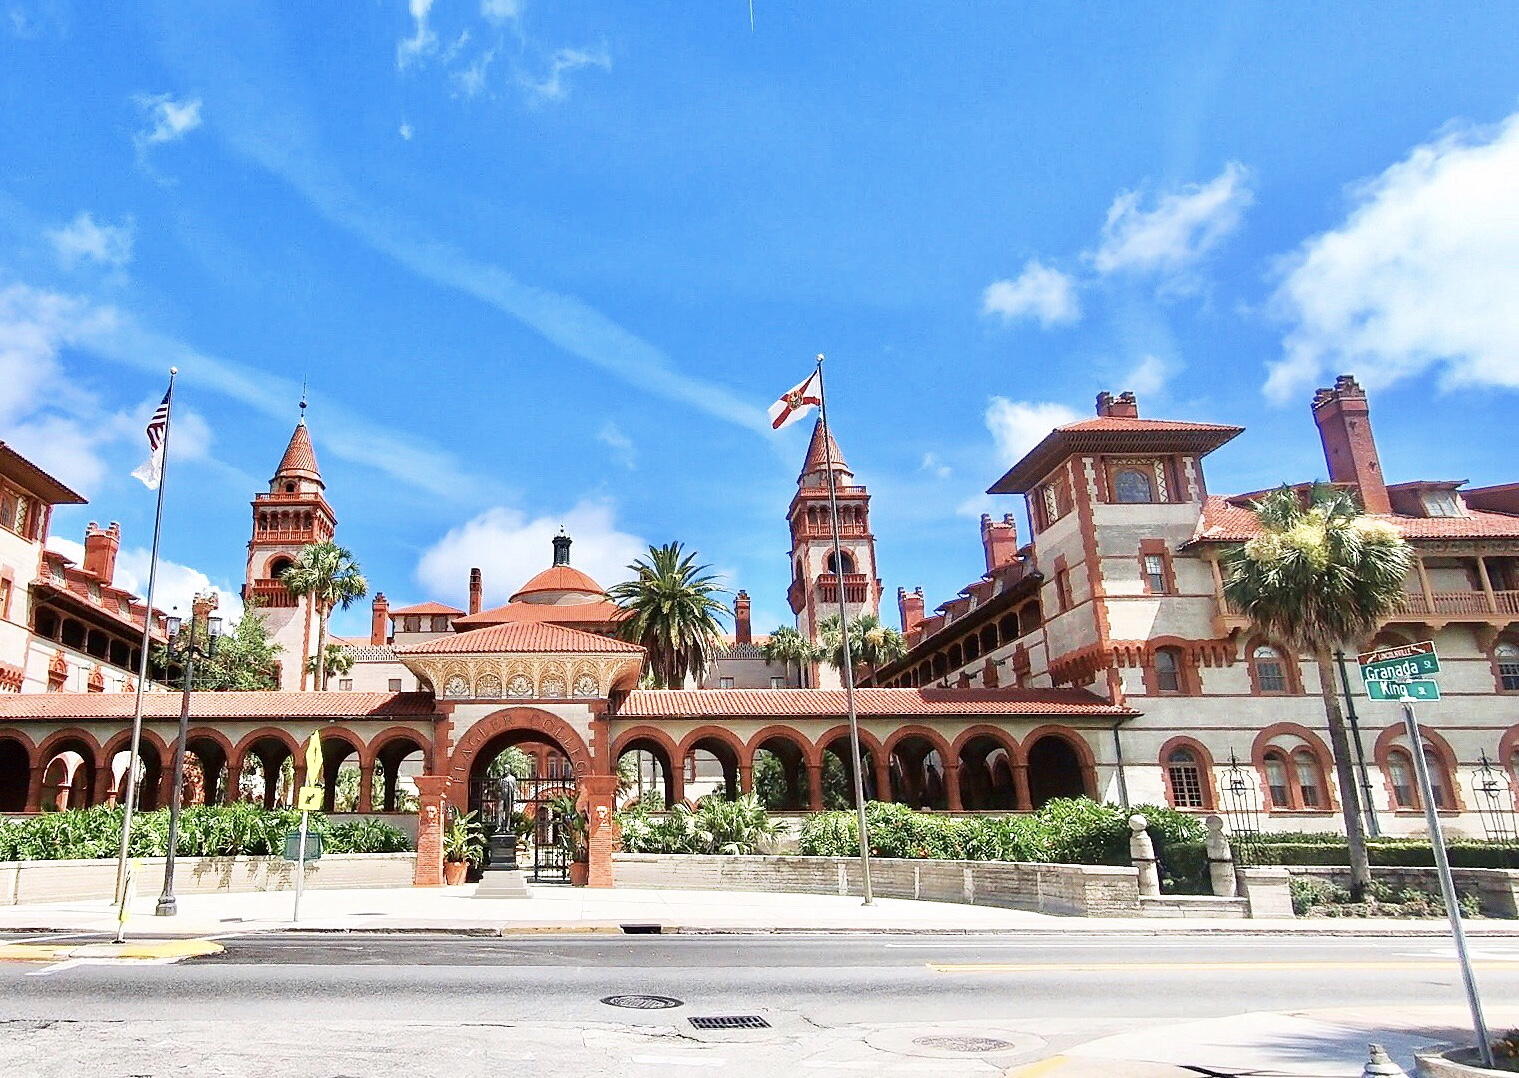 Flagler College, Henry Morrison Flagler, St. Augustine Attractions